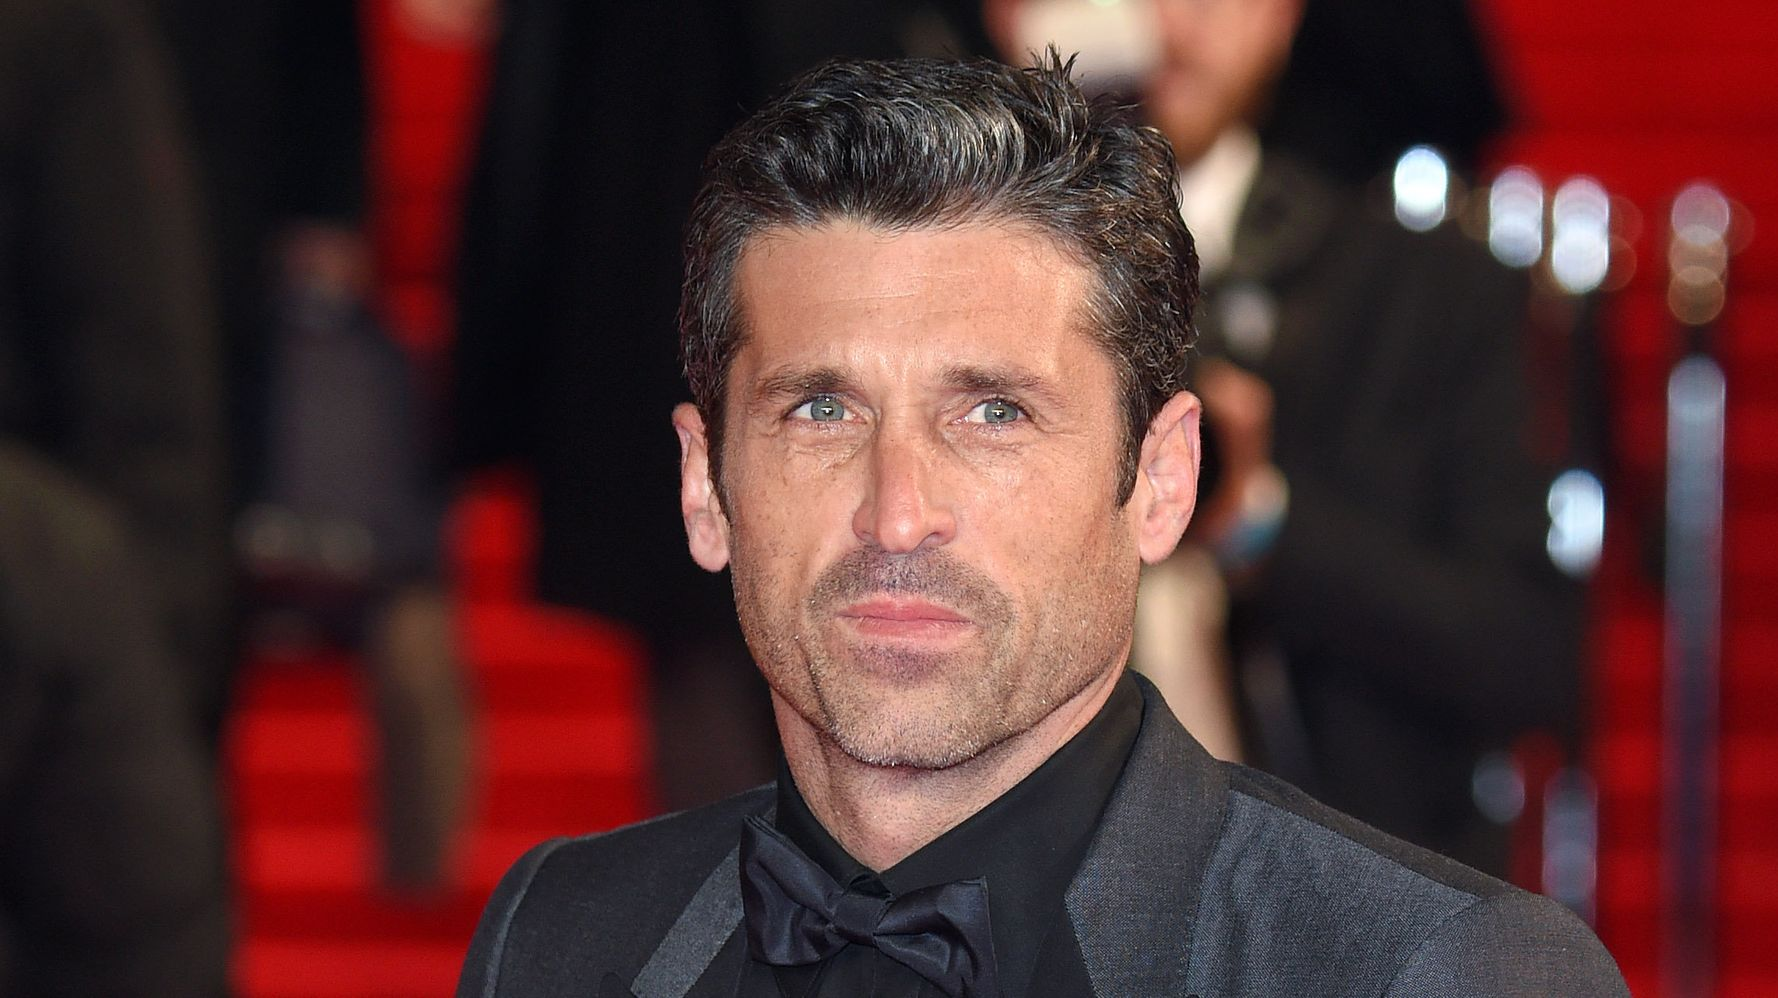 10 Photos That Prove Patrick Dempsey Only Gets Hotter With Age